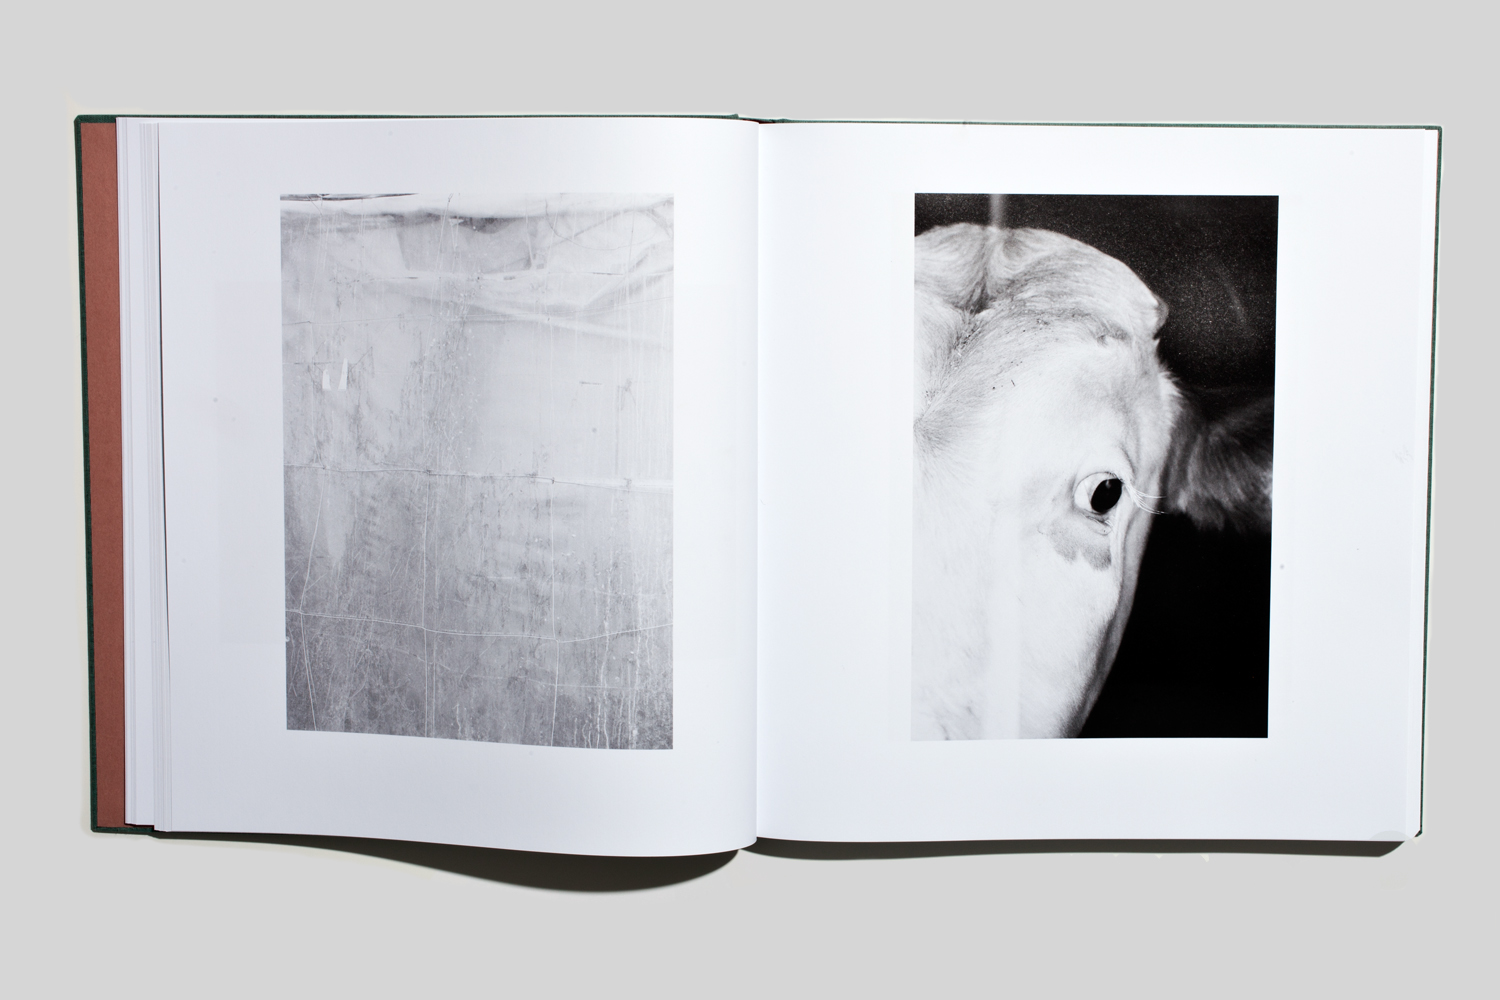 Clothbound and slipcased, Michael Schmidt's photobook Lebensmittel (Snoeck Verlag, Cologne, 2012), which roughly translates as food or foodstuff, is exceptional. In over 170 arresting pictures (no text)—shot in abattoirs, bulk bakeries, apple washing plants, dairy farms and fish banks—Lebensmittel is a signature examination of the industrialized global food economy. Impeccably paginated, Schmidt's critical sequencing of pictures reveals the subject at close range: freshly sliced sausage products, French fries tumbling from greased griddles, fish frozen into blocks of ice, the cropped head of a dead cow, and infrared-looking tomatoes. Schmidt adopts the productive model of 1920s sachlichkeit (objective) photography. Yet, it is precisely the contrast between the utopian position of his predecessors, who presented the industrial motifs in a 'beautiful world' aesthetic, that makes Schmidt's book particularly relevant. There is no question that Schmidt, whose earlier book EIN-HEIT (Scalo, 1996) remains a classic, is one of the outstanding artists of German photography.                                                               —Roxana Marcoci, Curator, The Museum of Modern Art, New York